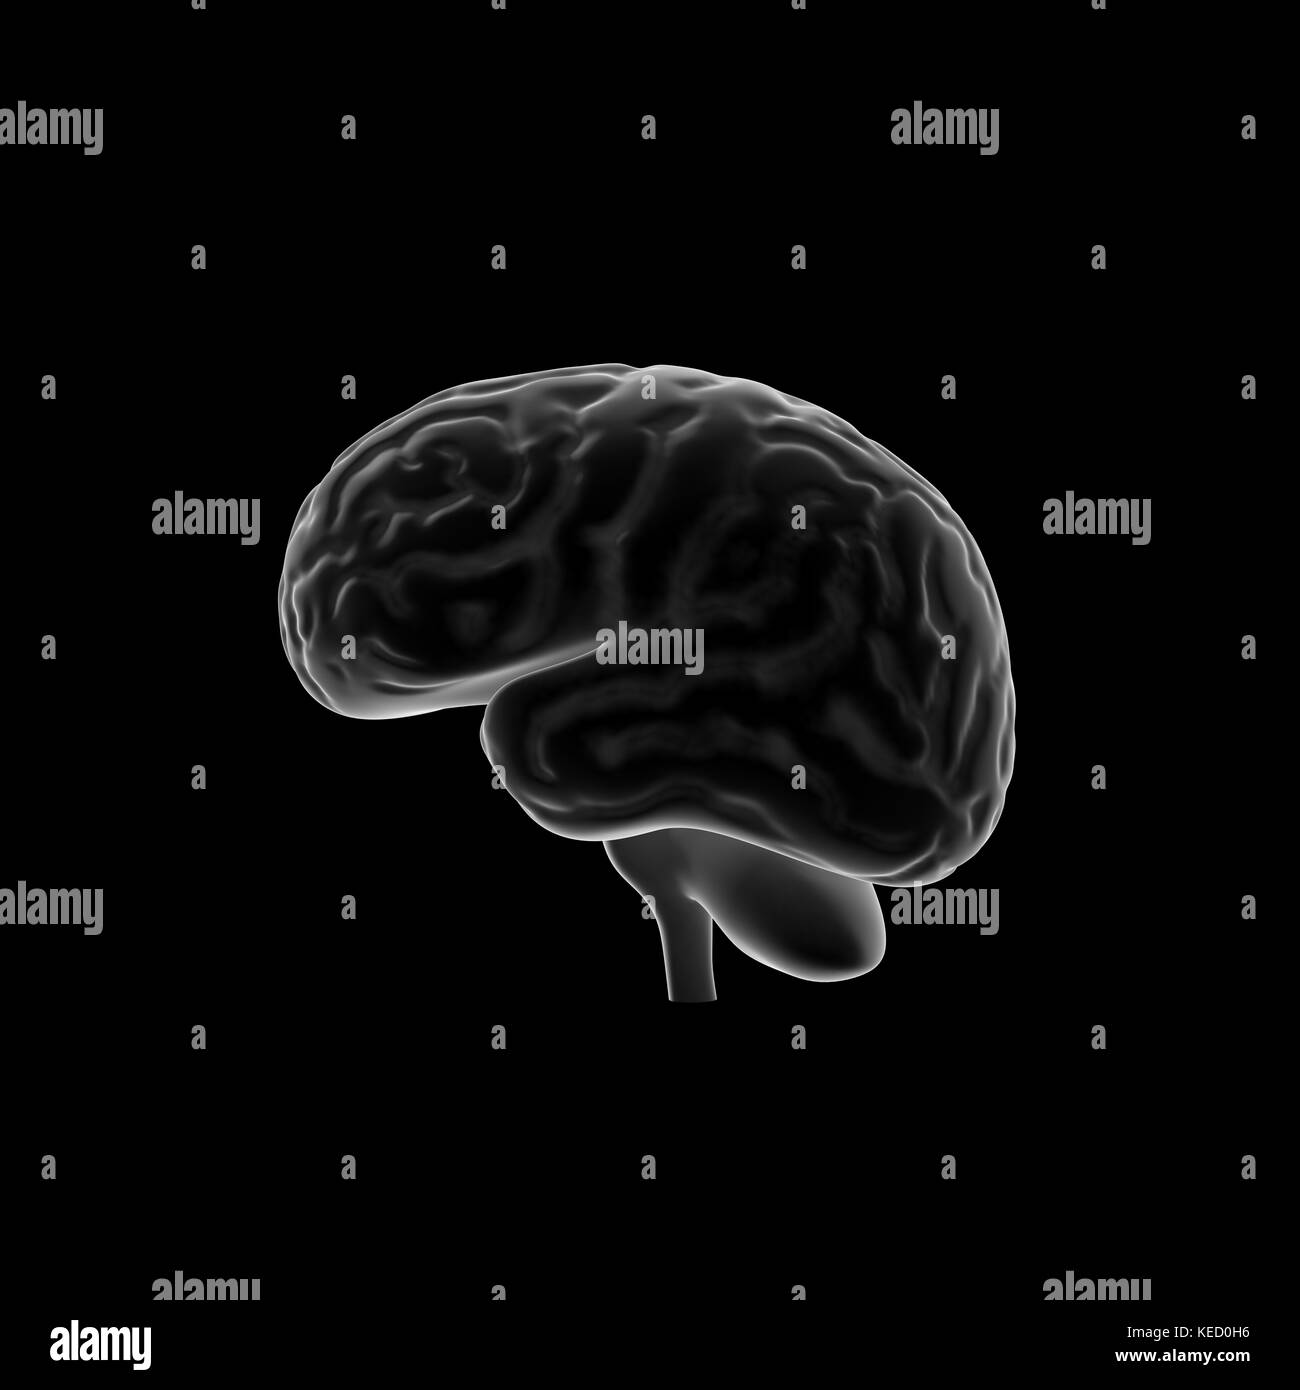 Brain Scan Black and White Stock Photos & Images - Alamy